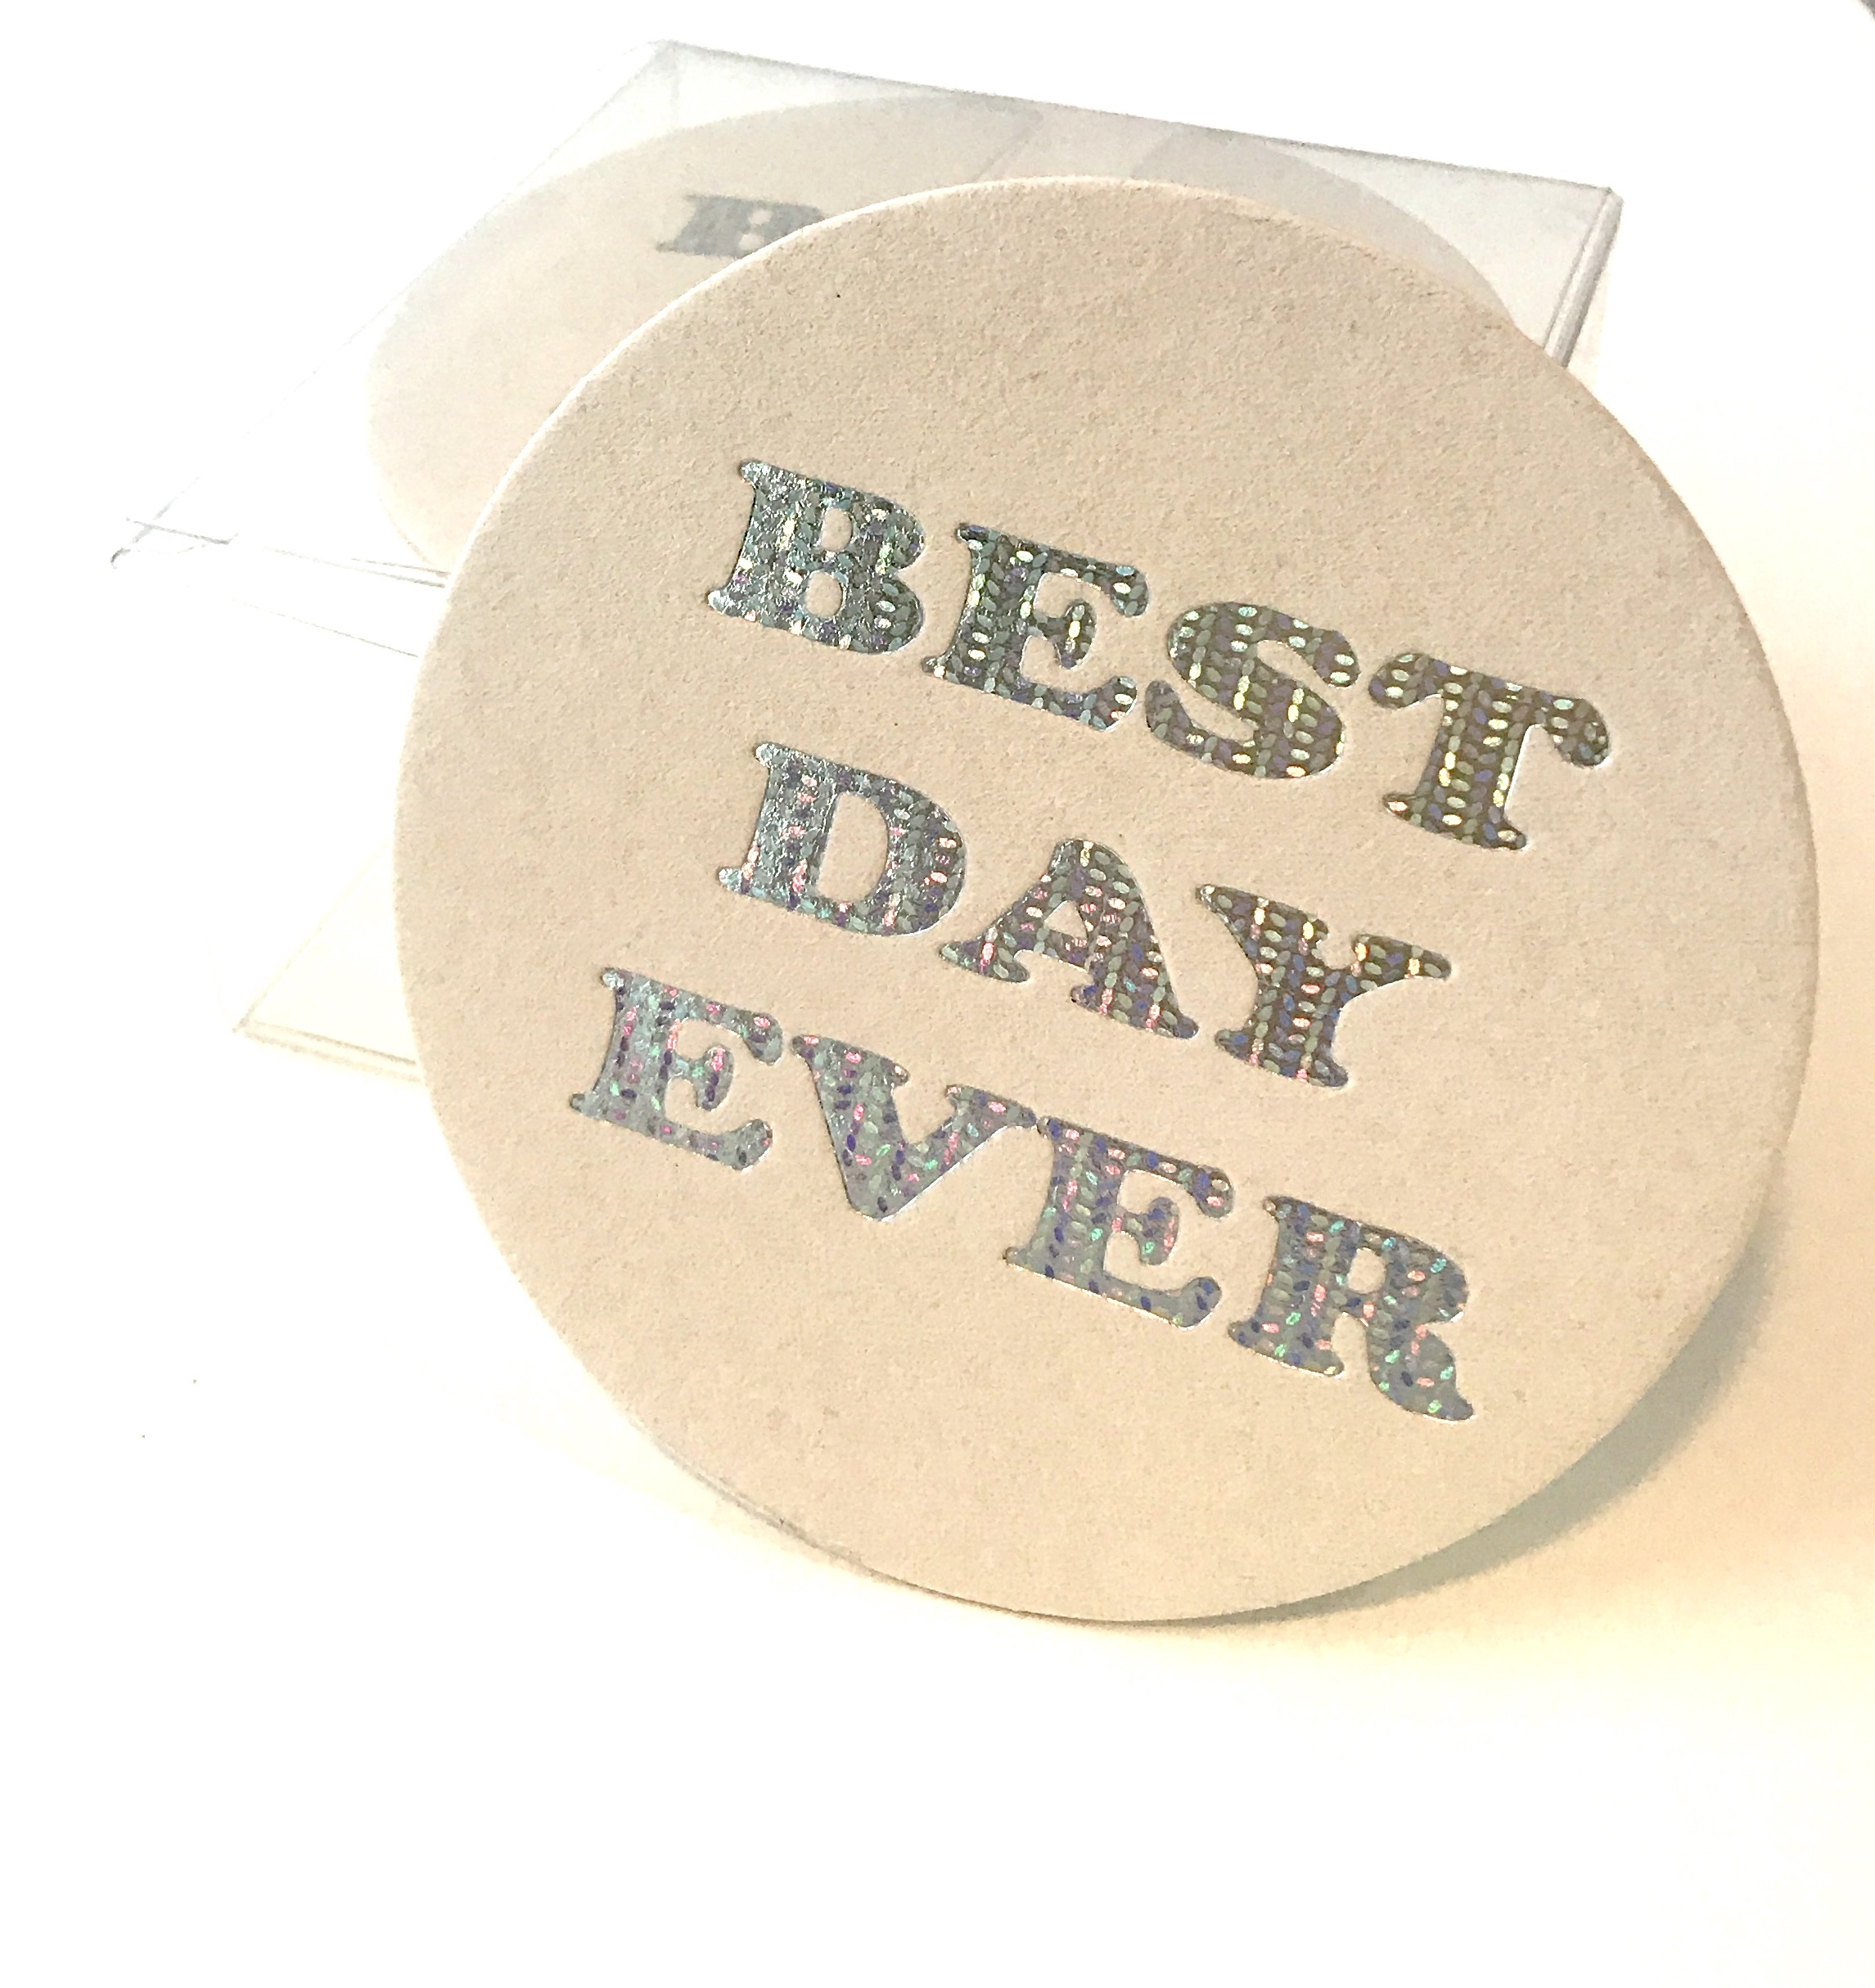 Best day ever coasters .JPG